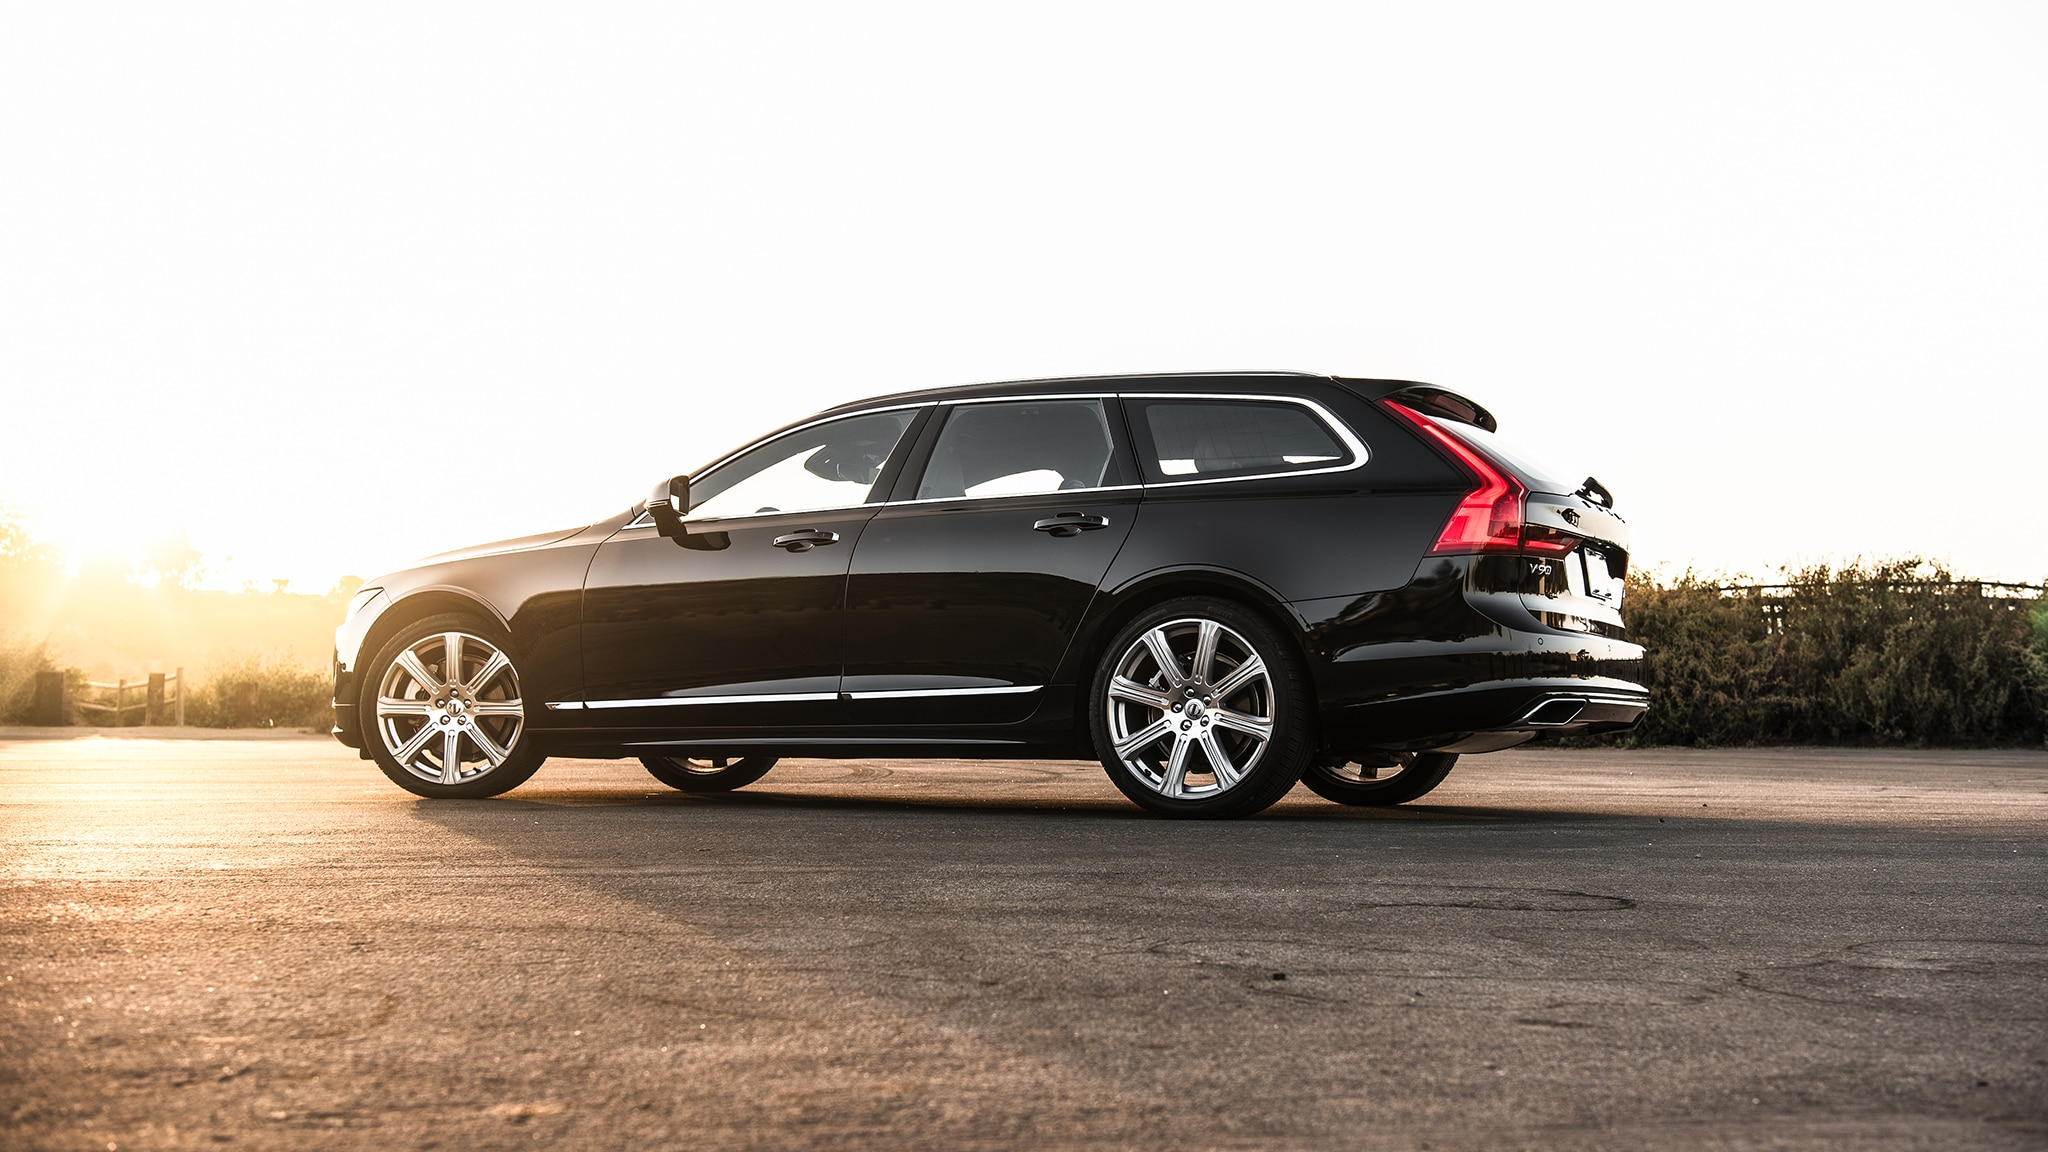 Better Vibrations? Our Long-Term Volvo V90 Hopes for a Good